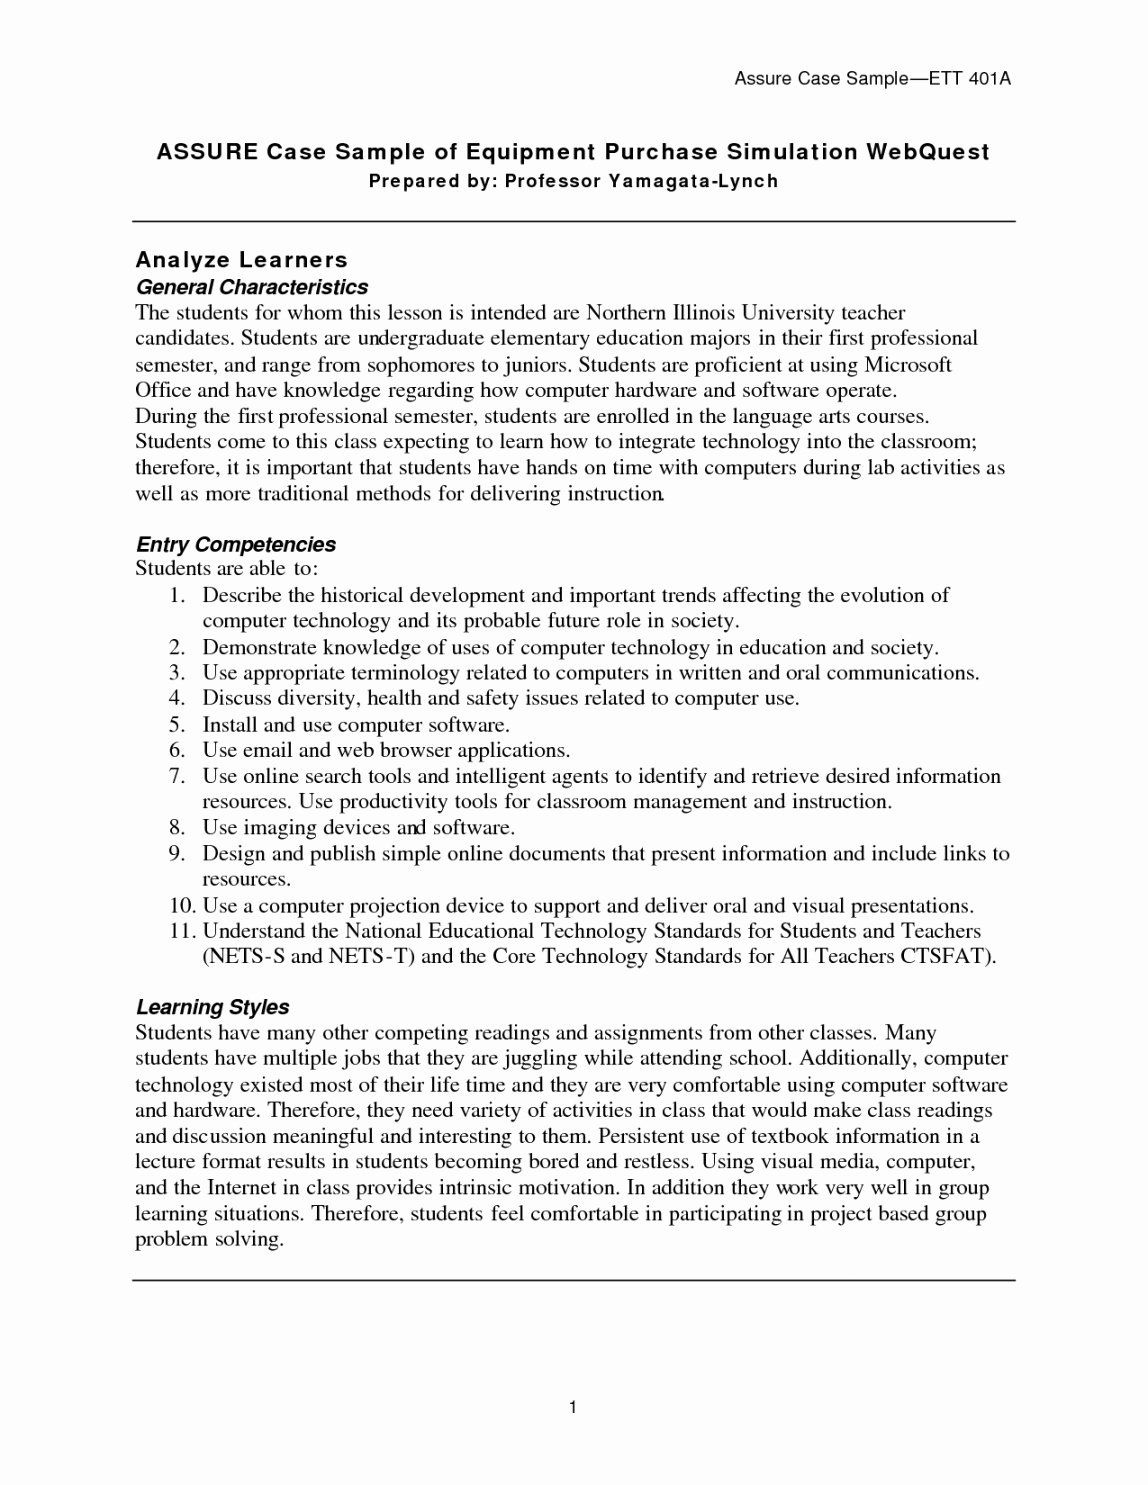 Equipment Purchase Proposal Template Inspirational Equipment Purchase Proposal Te Proposal Templates Business Proposal Template Free Business Proposal Template